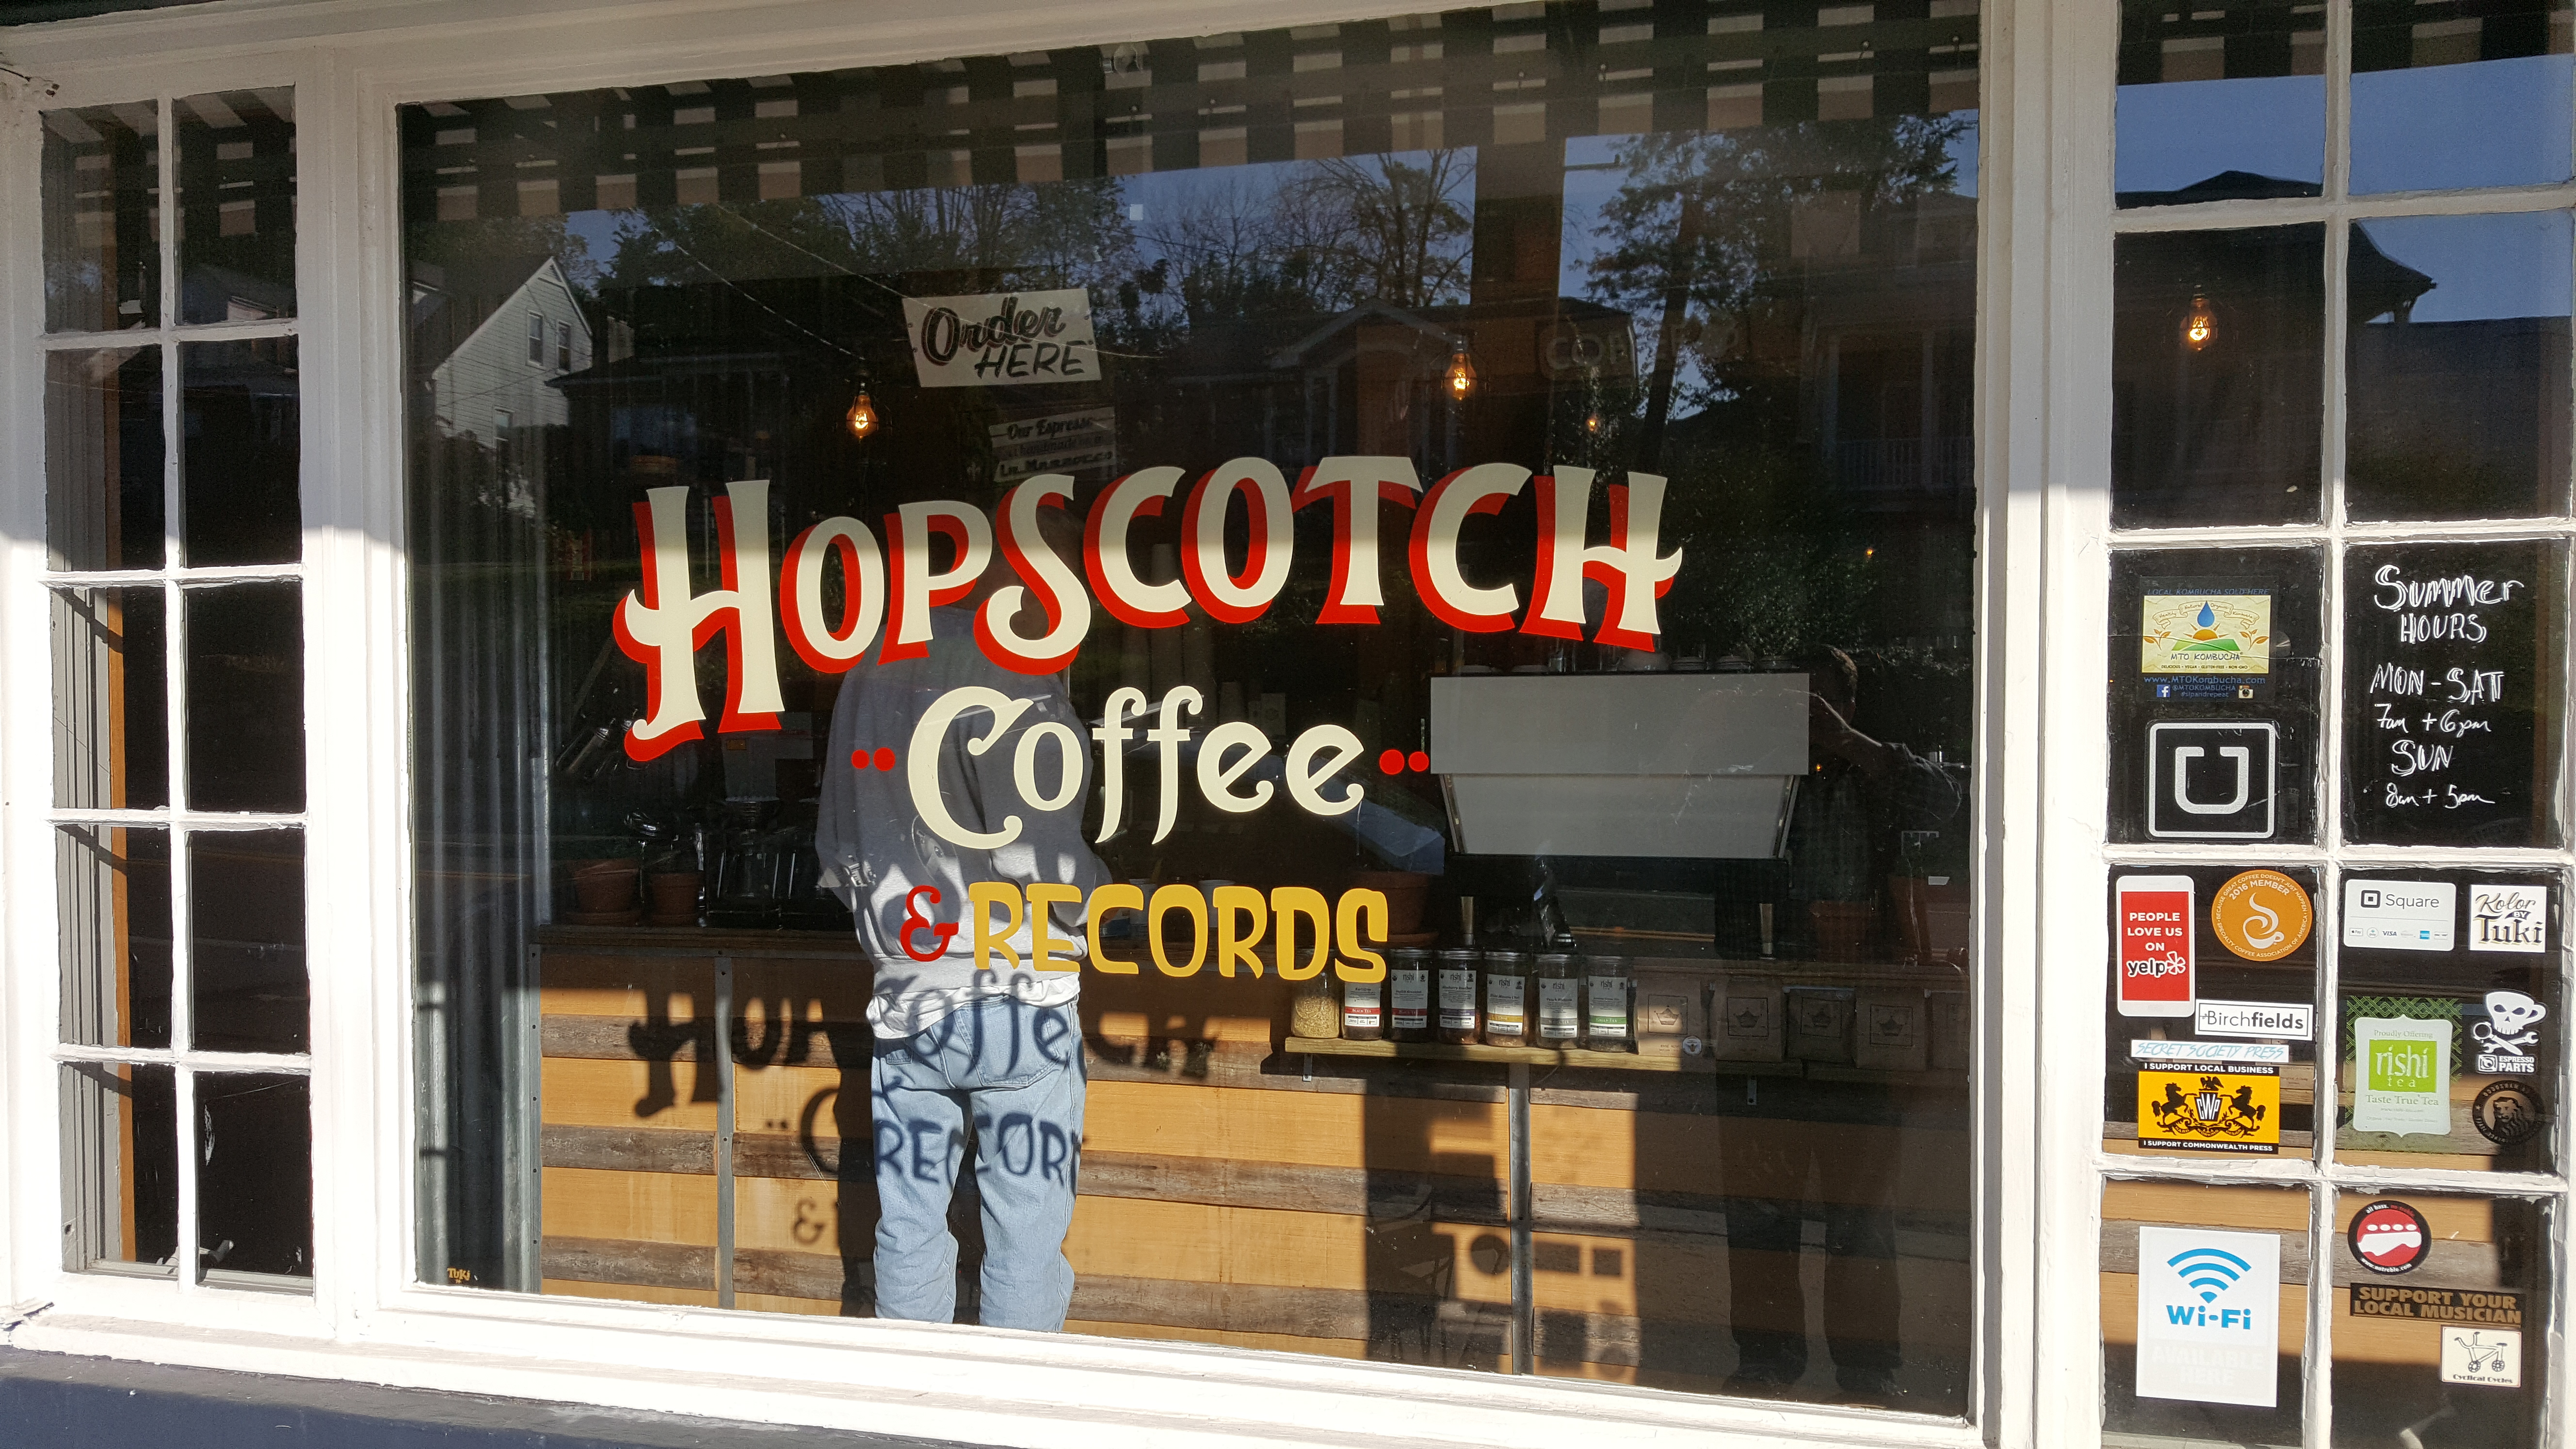 Hopscotch Coffee & Records